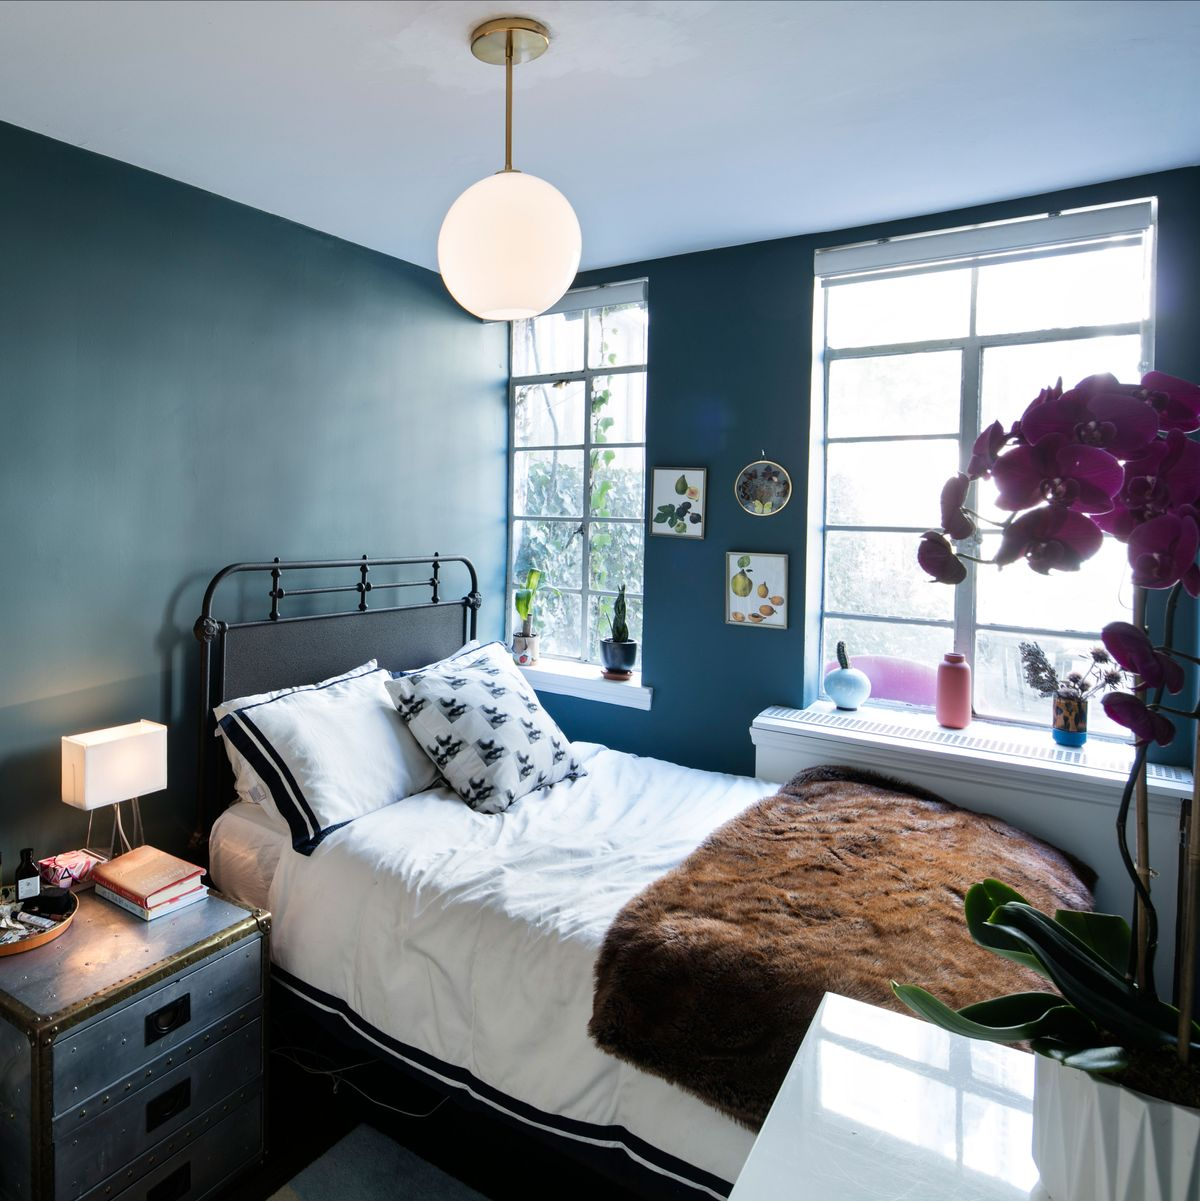 How to Make a Dark Room Brighter — Solutions 12  The Strategist